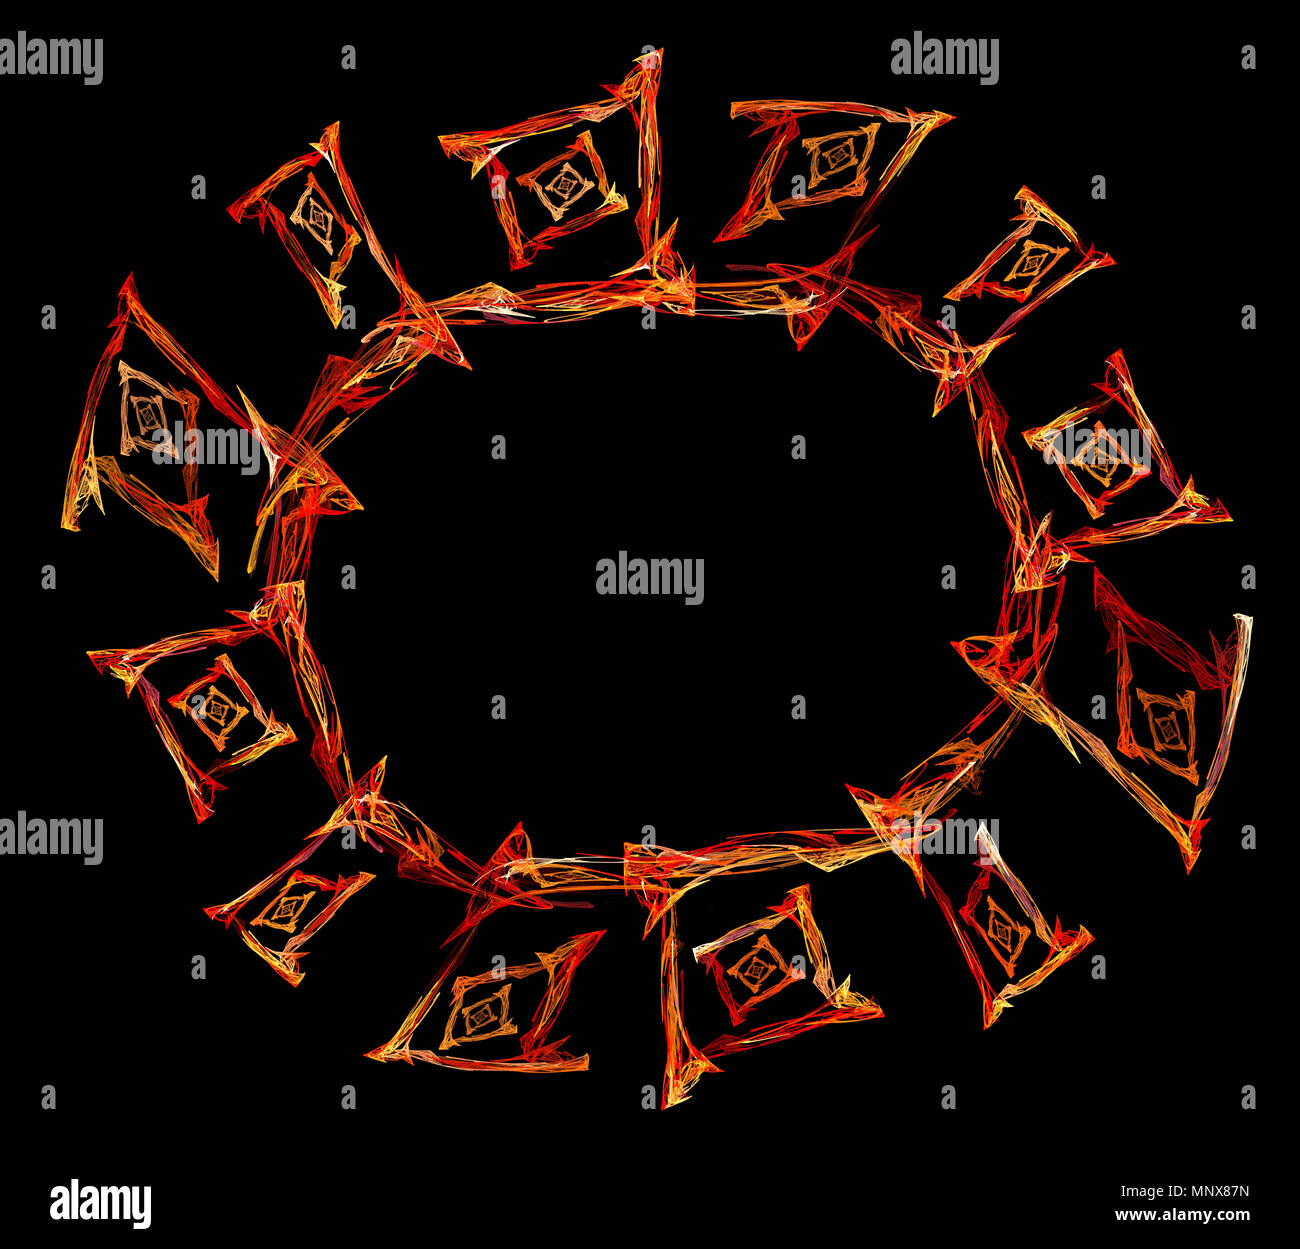 Fiery ornament oval frame colored abstract, horizontal, over black background - Stock Image